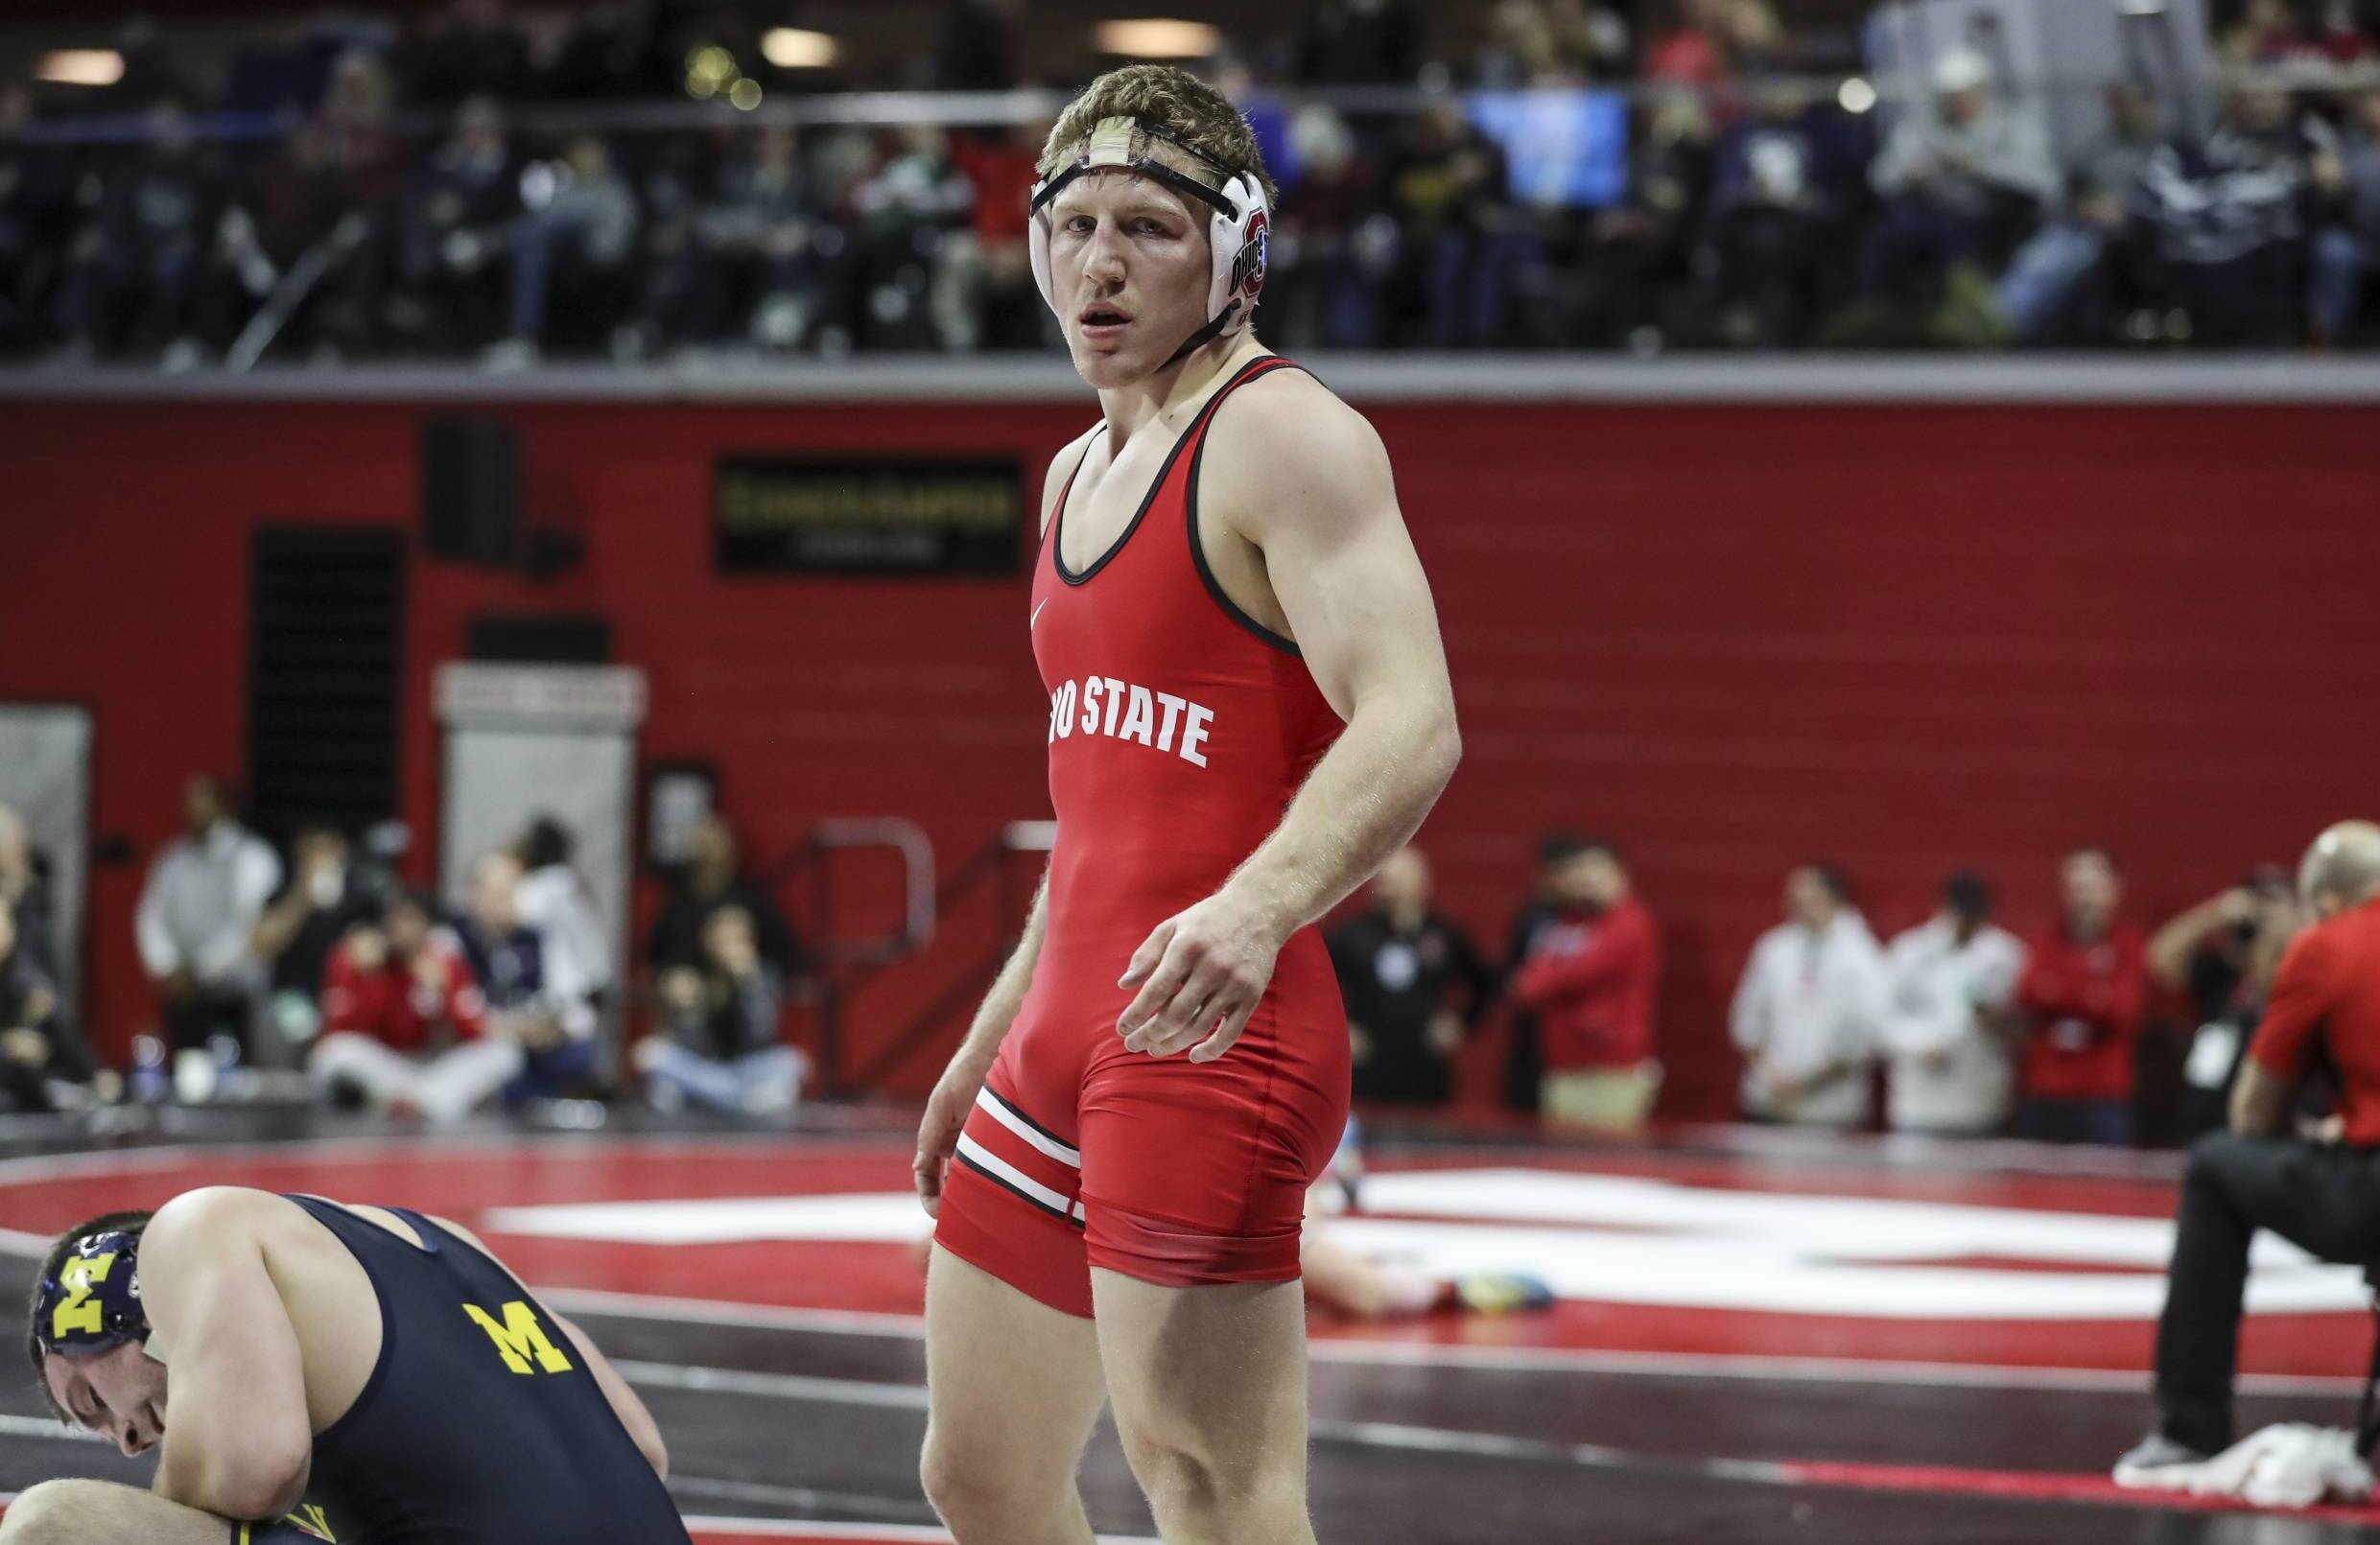 Six Ohio State Wrestlers Earn Scholar All-American Accolades